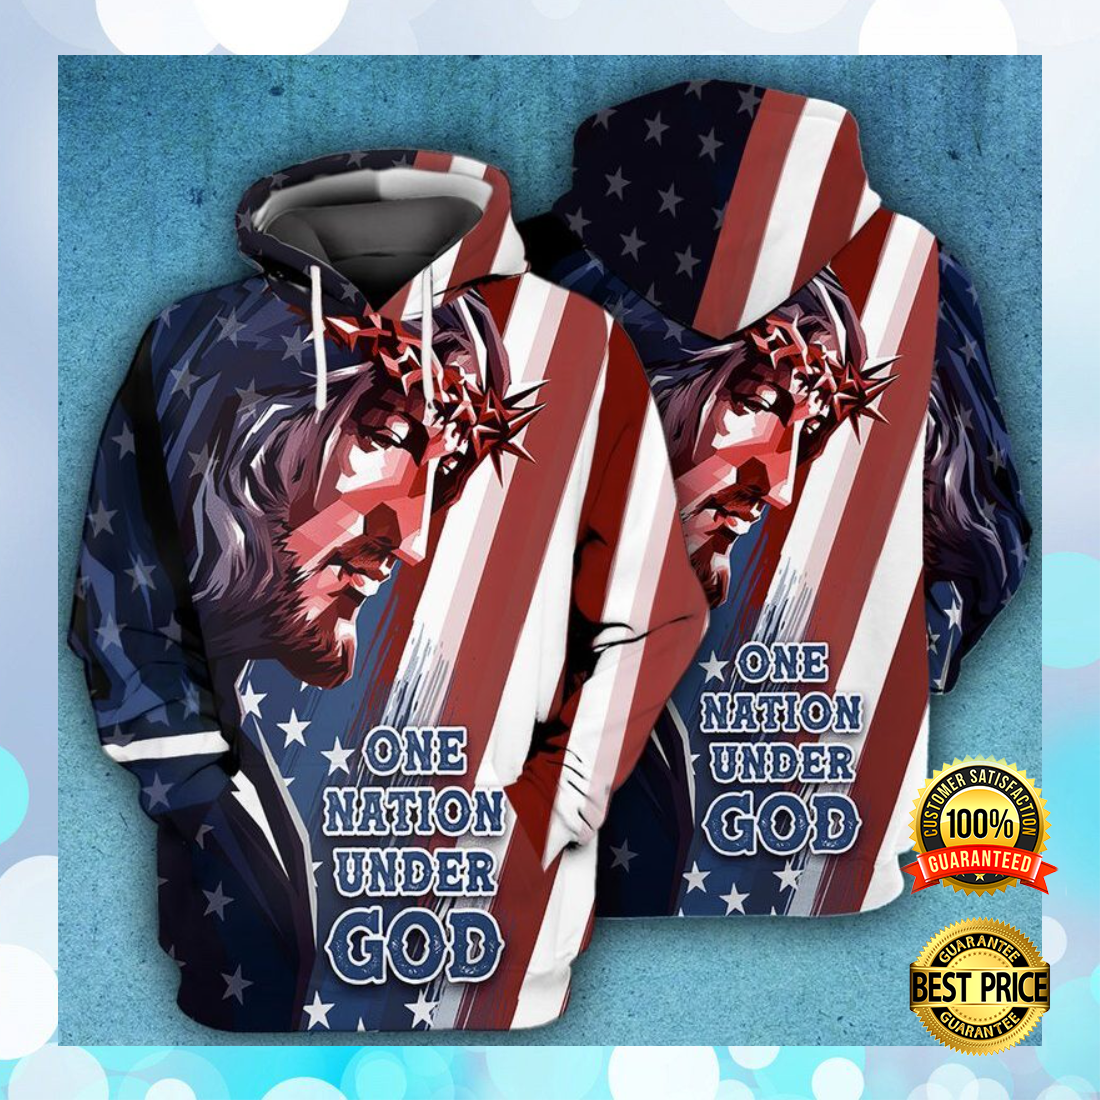 One nation under God American flag all over printed 3D hoodie 5